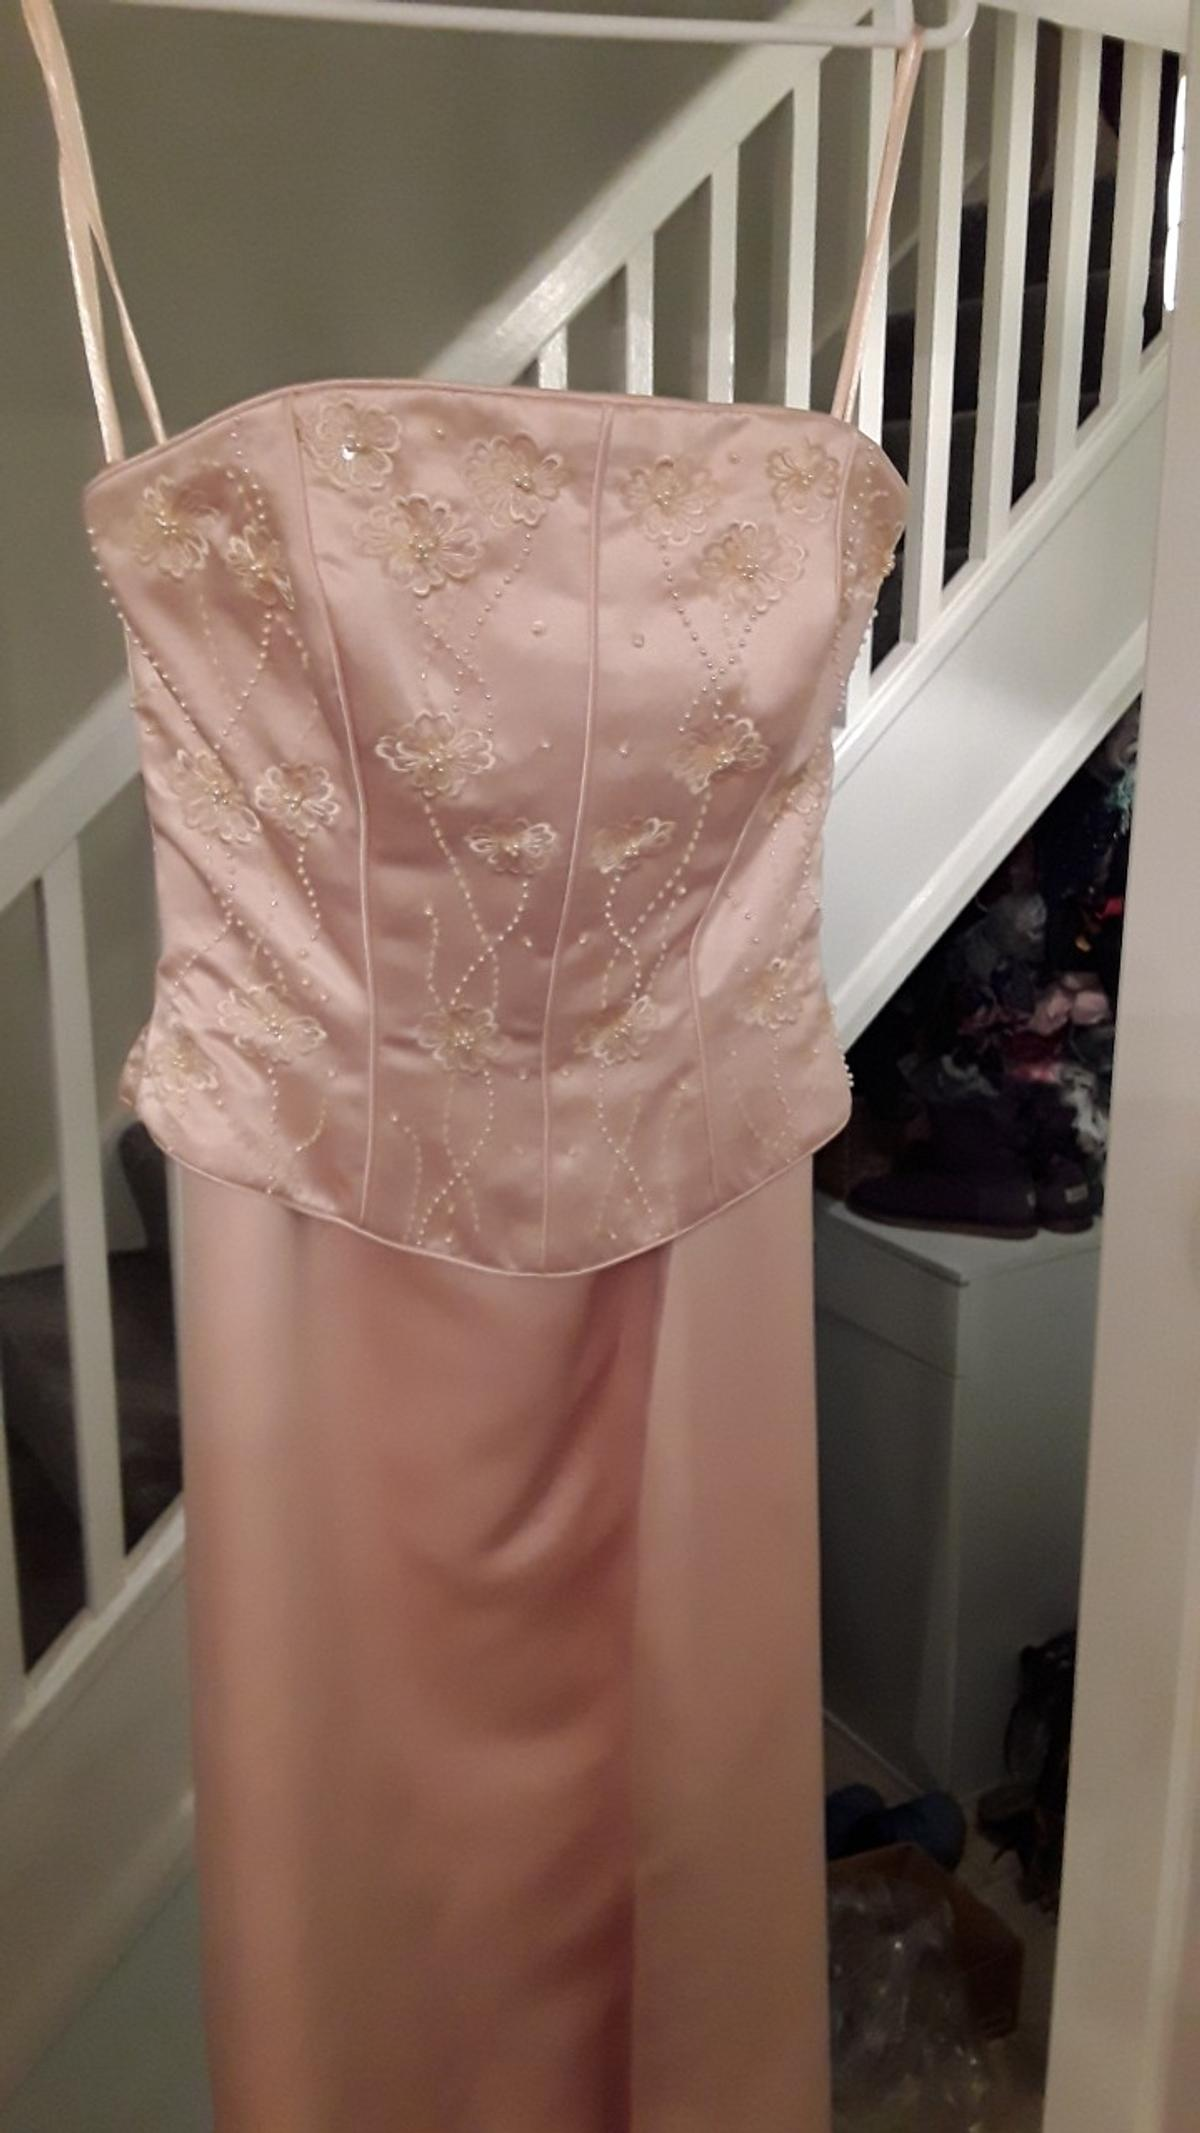 size 10 colour sand bridesmaid or prom dress separate bodice a line skirt